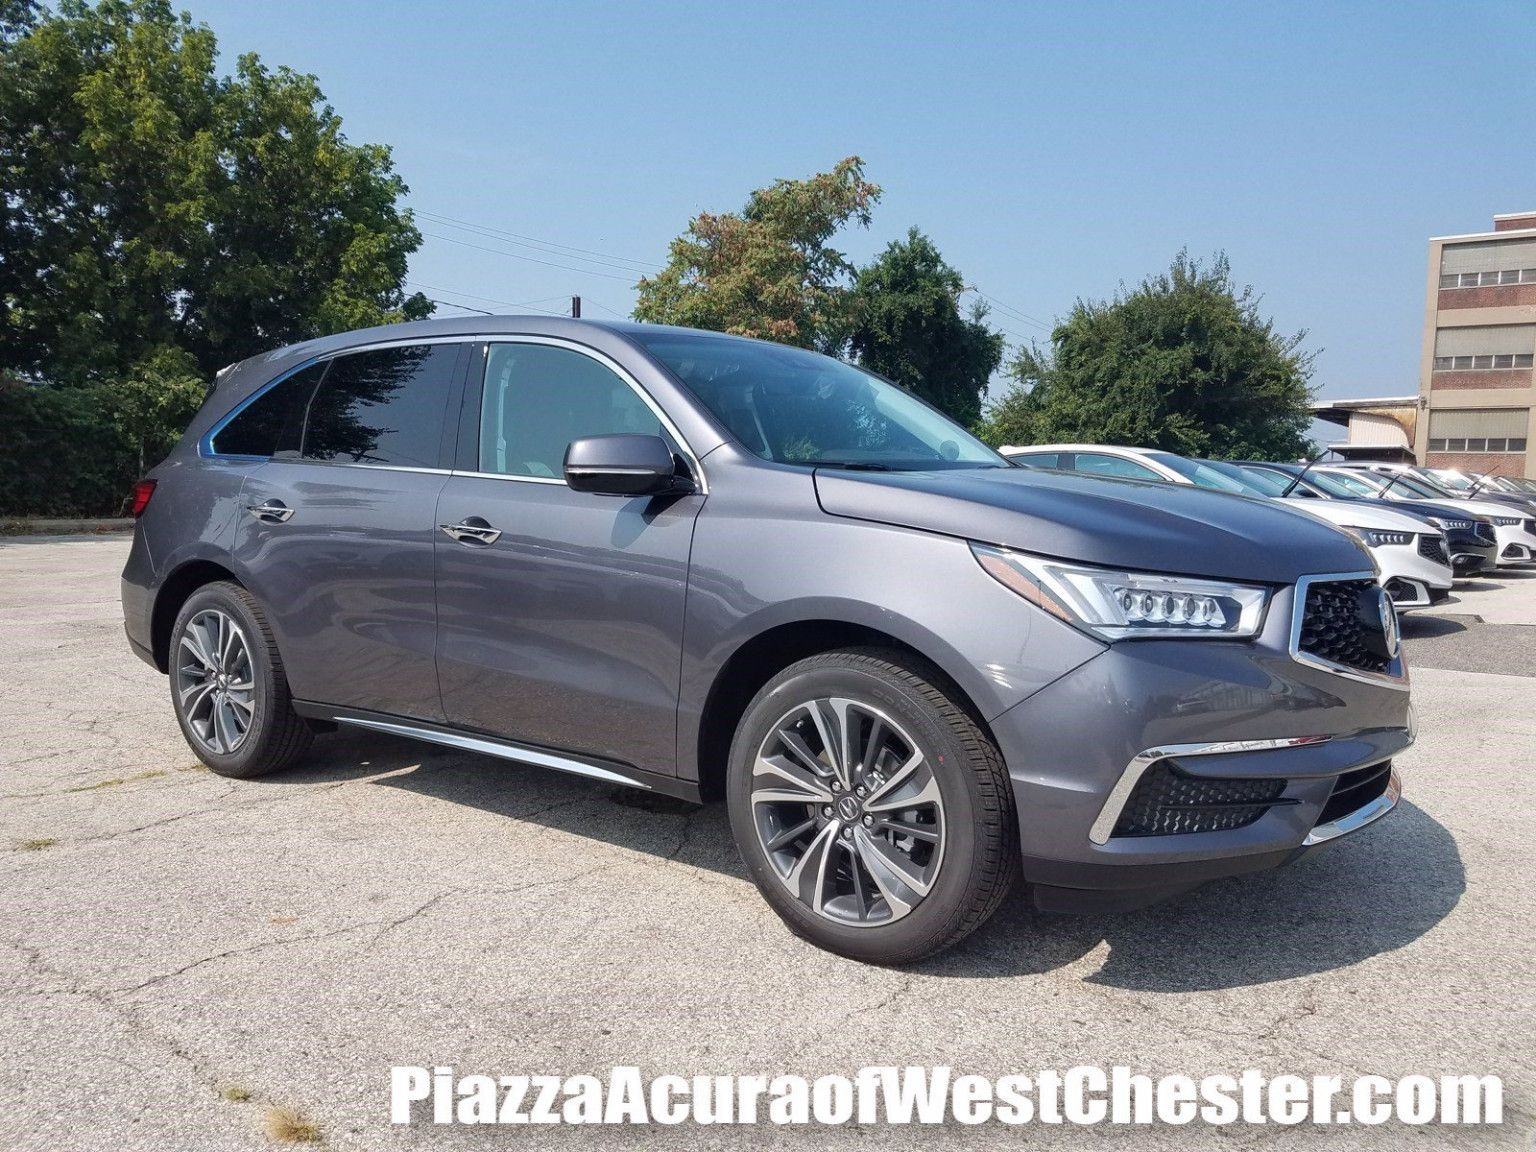 New 12 Acura Mdx Sh Awd With Technology Package For Sale In Ardmore Pa Vin 12j12yd12h12xll02122 In 2020 Technology Package Acura Mdx Acura